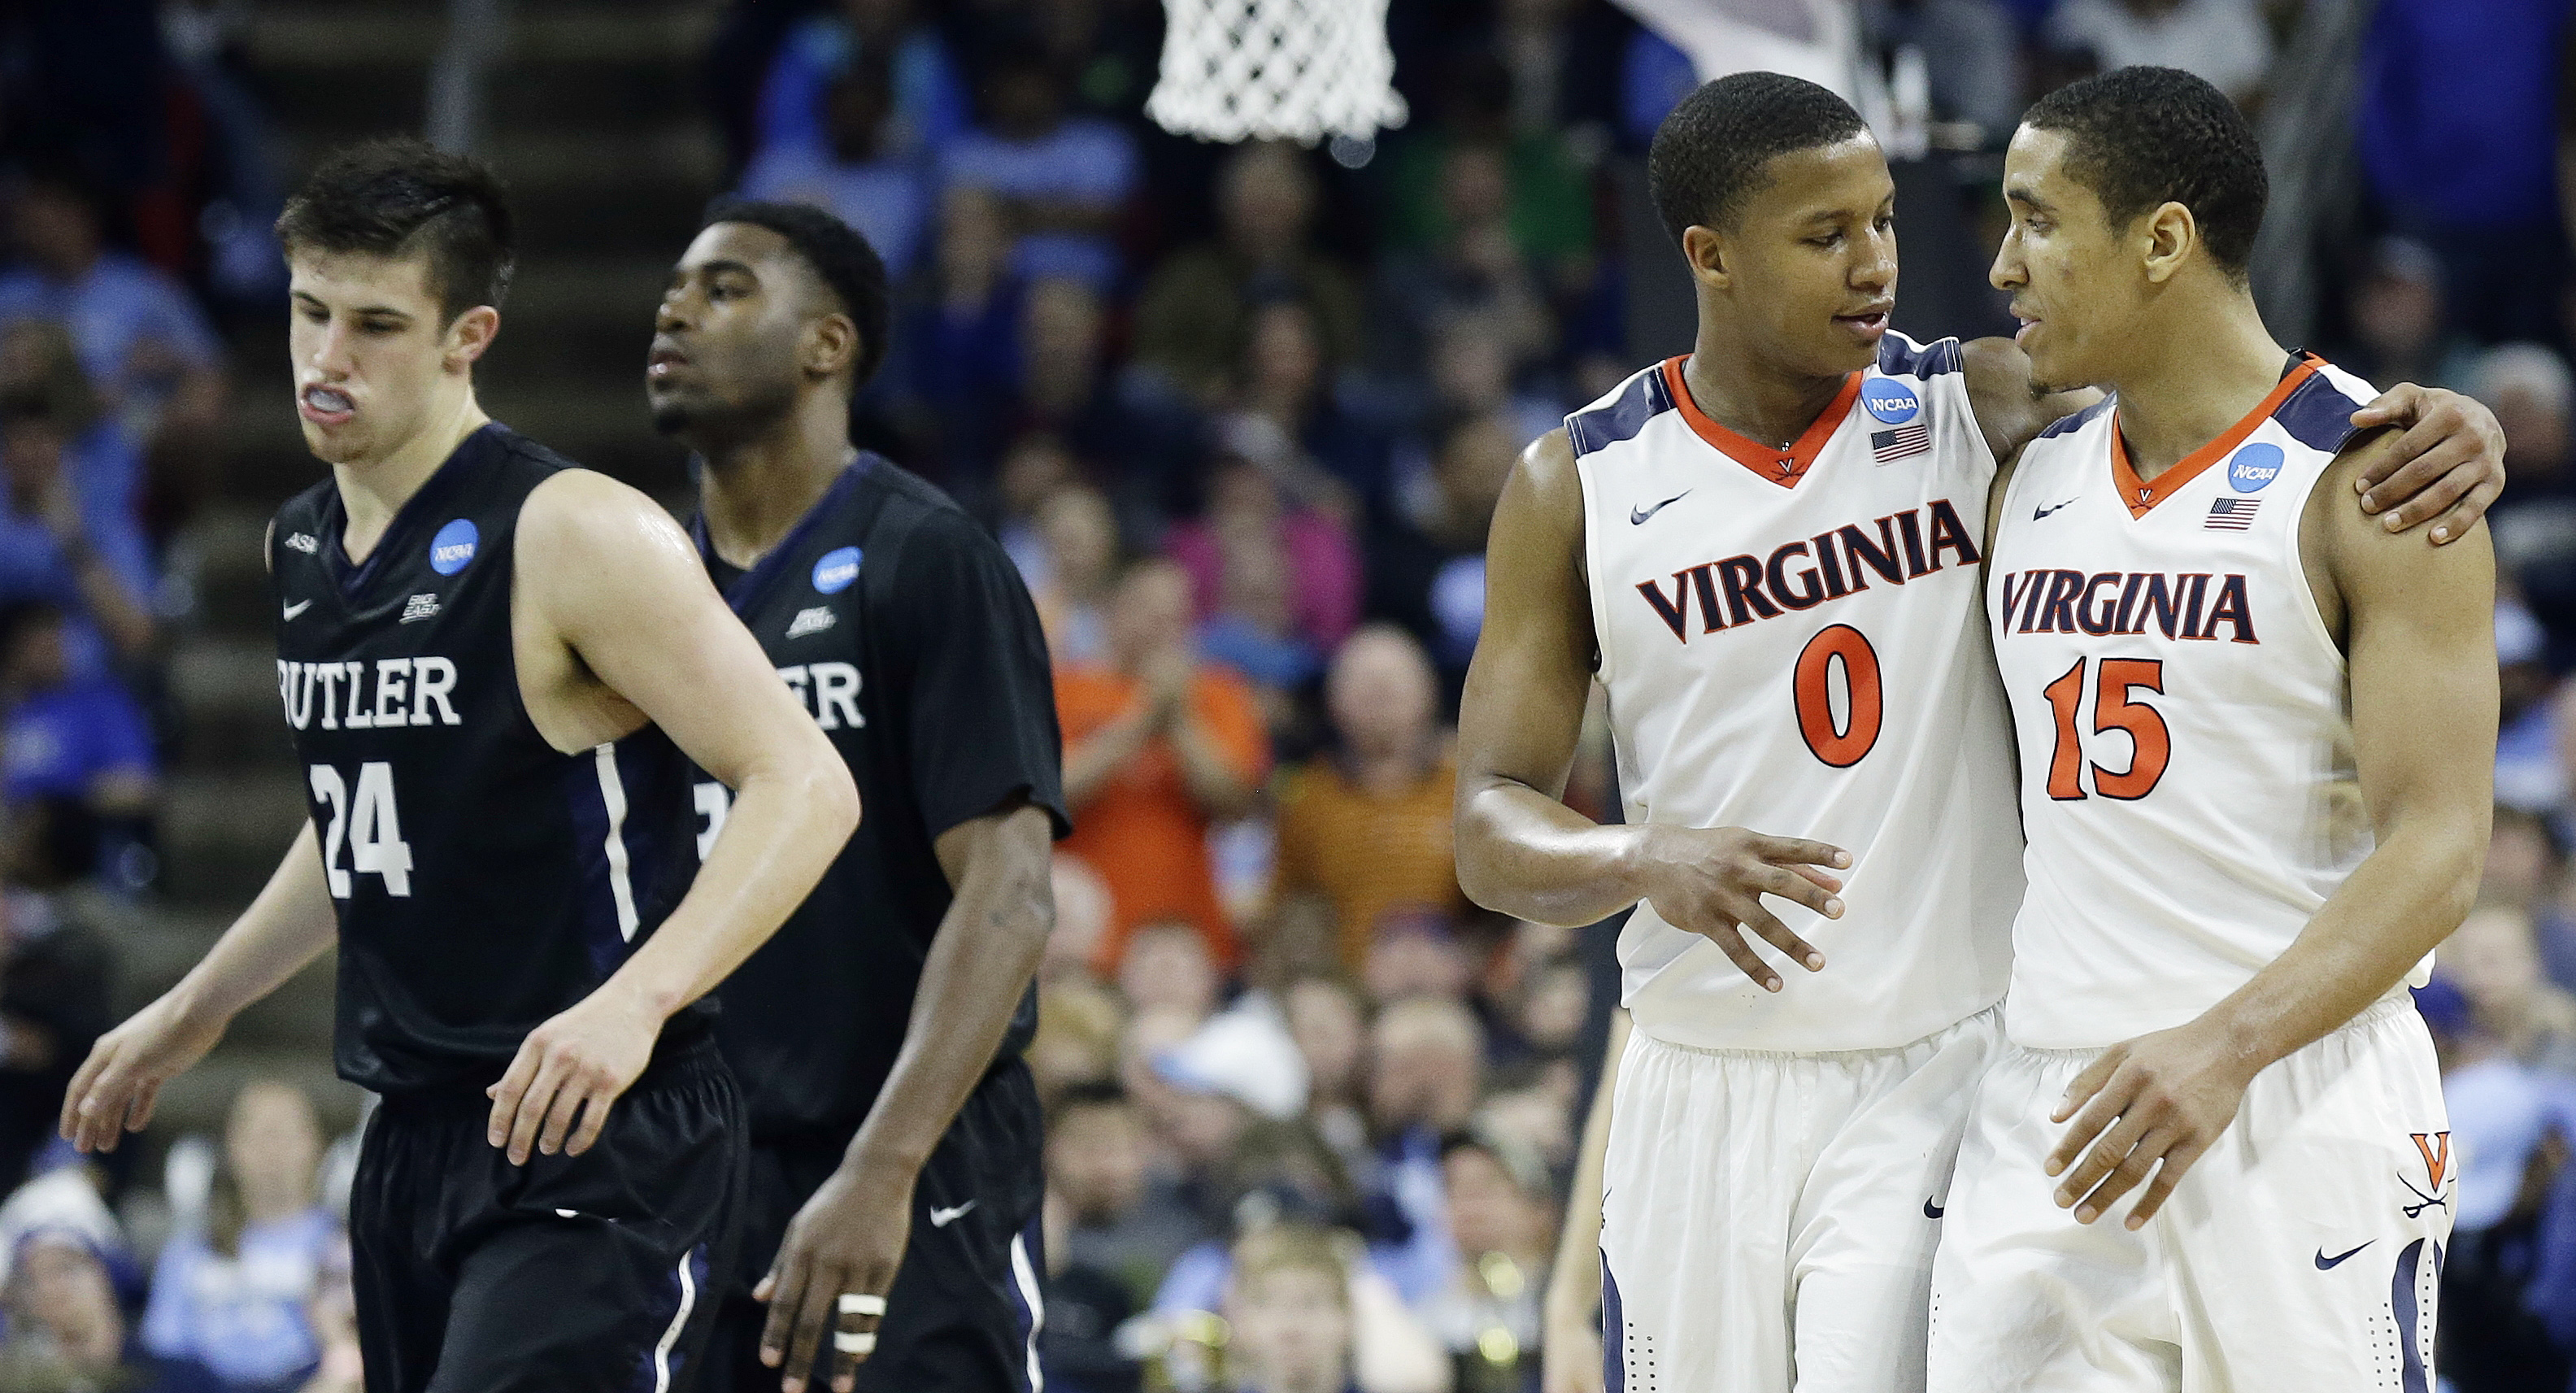 Virginia guard Devon Hall (0) speaks with Virginia guard Malcolm Brogdon (15) after the second half of a second-round men's college basketball game in the NCAA Tournament against Butler, Saturday, March 19, 2016, in Raleigh, N.C. Virginia won 77-69. (AP P